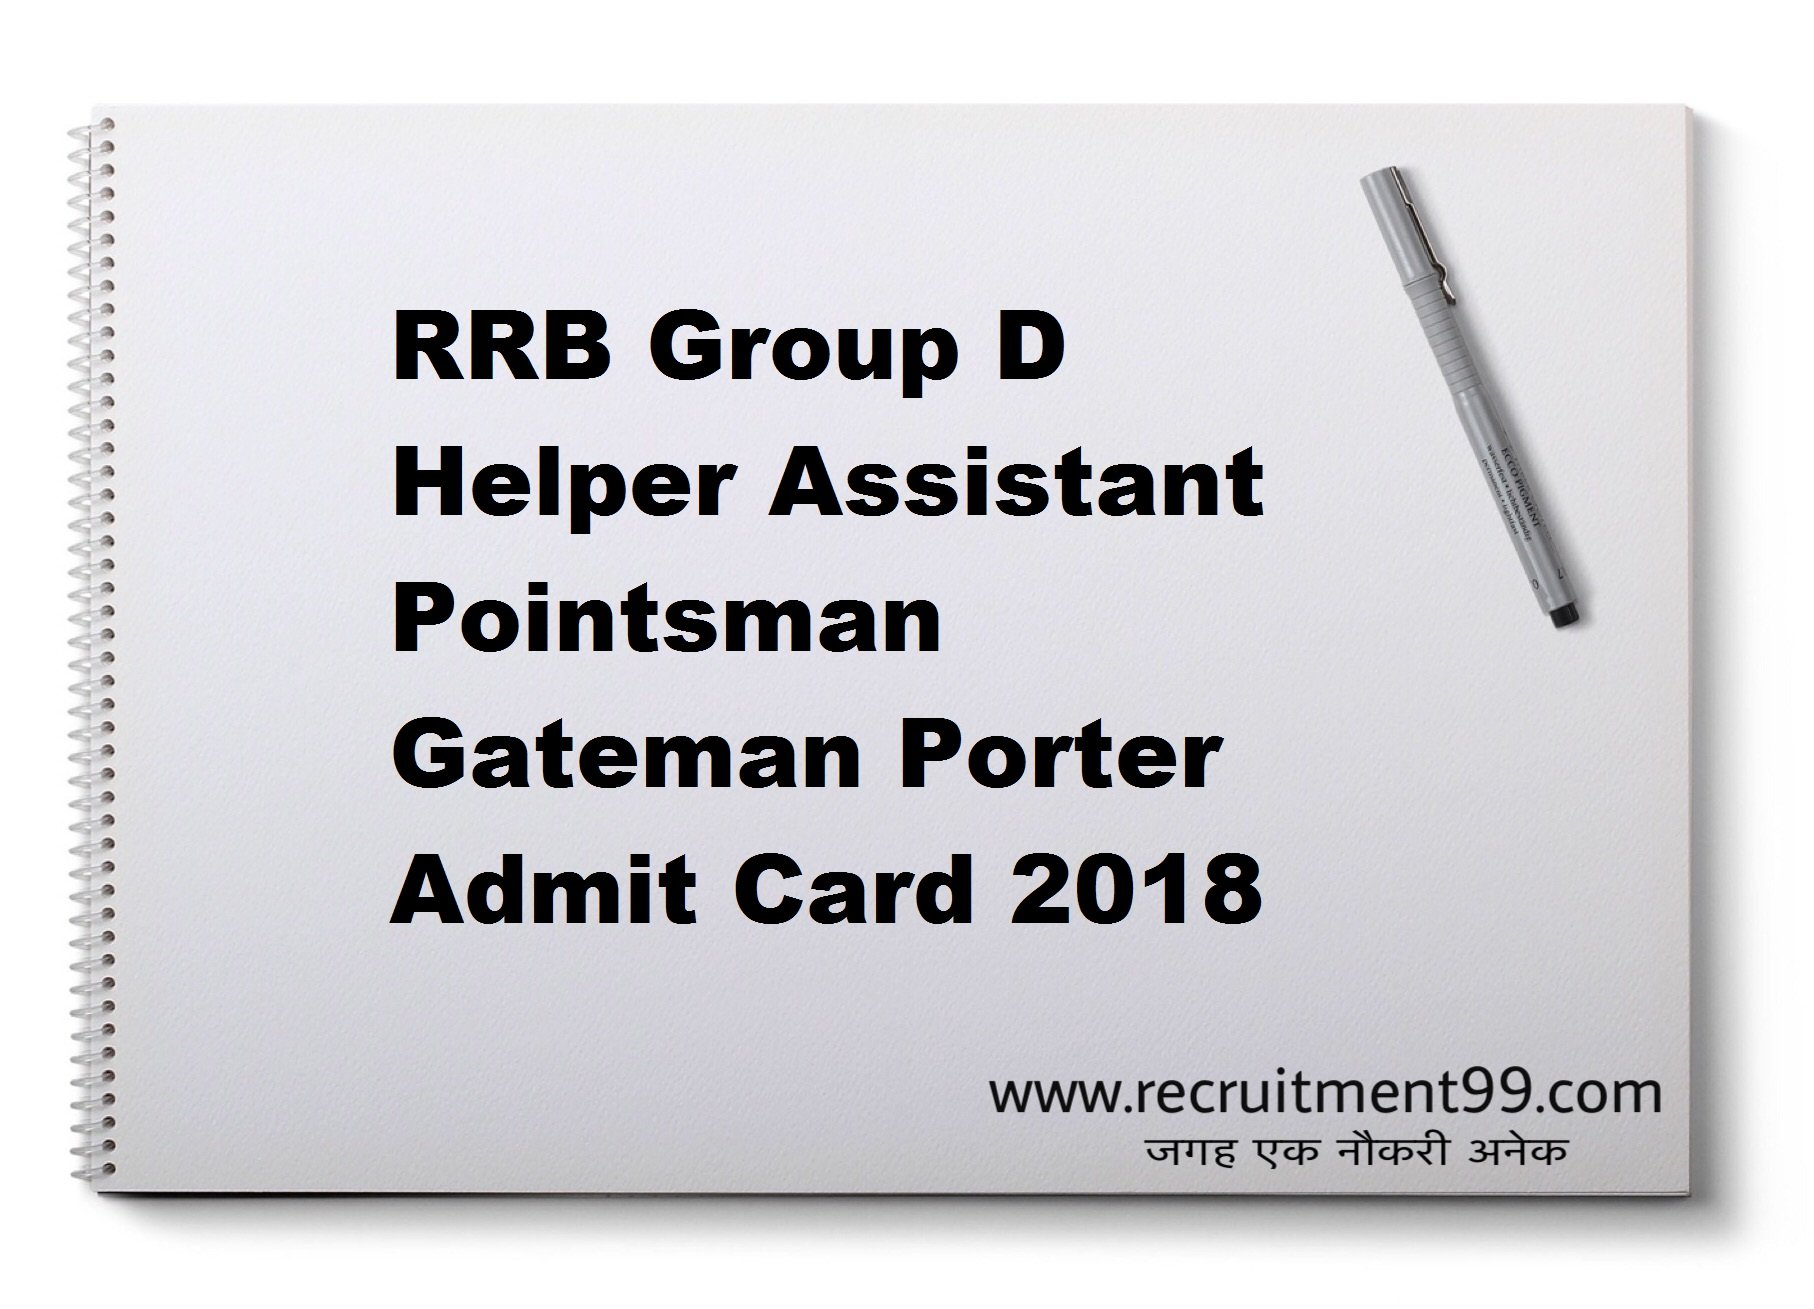 RRB Group D Helper Assistant Pointsman Gateman Porter Recruitment Admit Card Result 2018